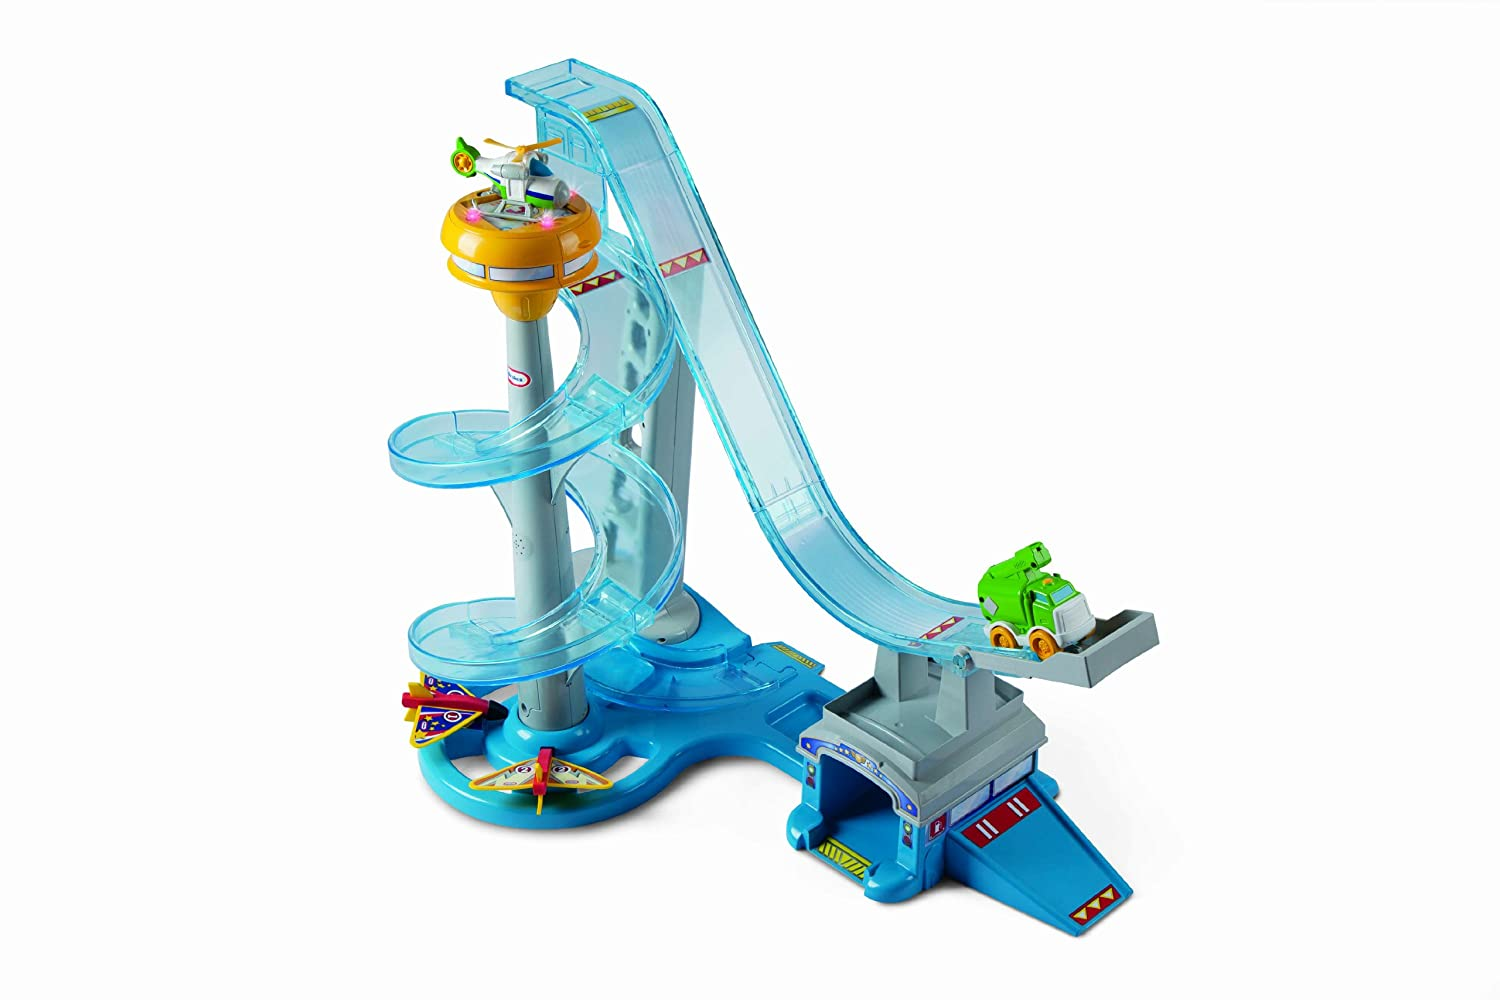 Amazon.com: Little Tikes Big Adventures Action Fliers: Toys & Games